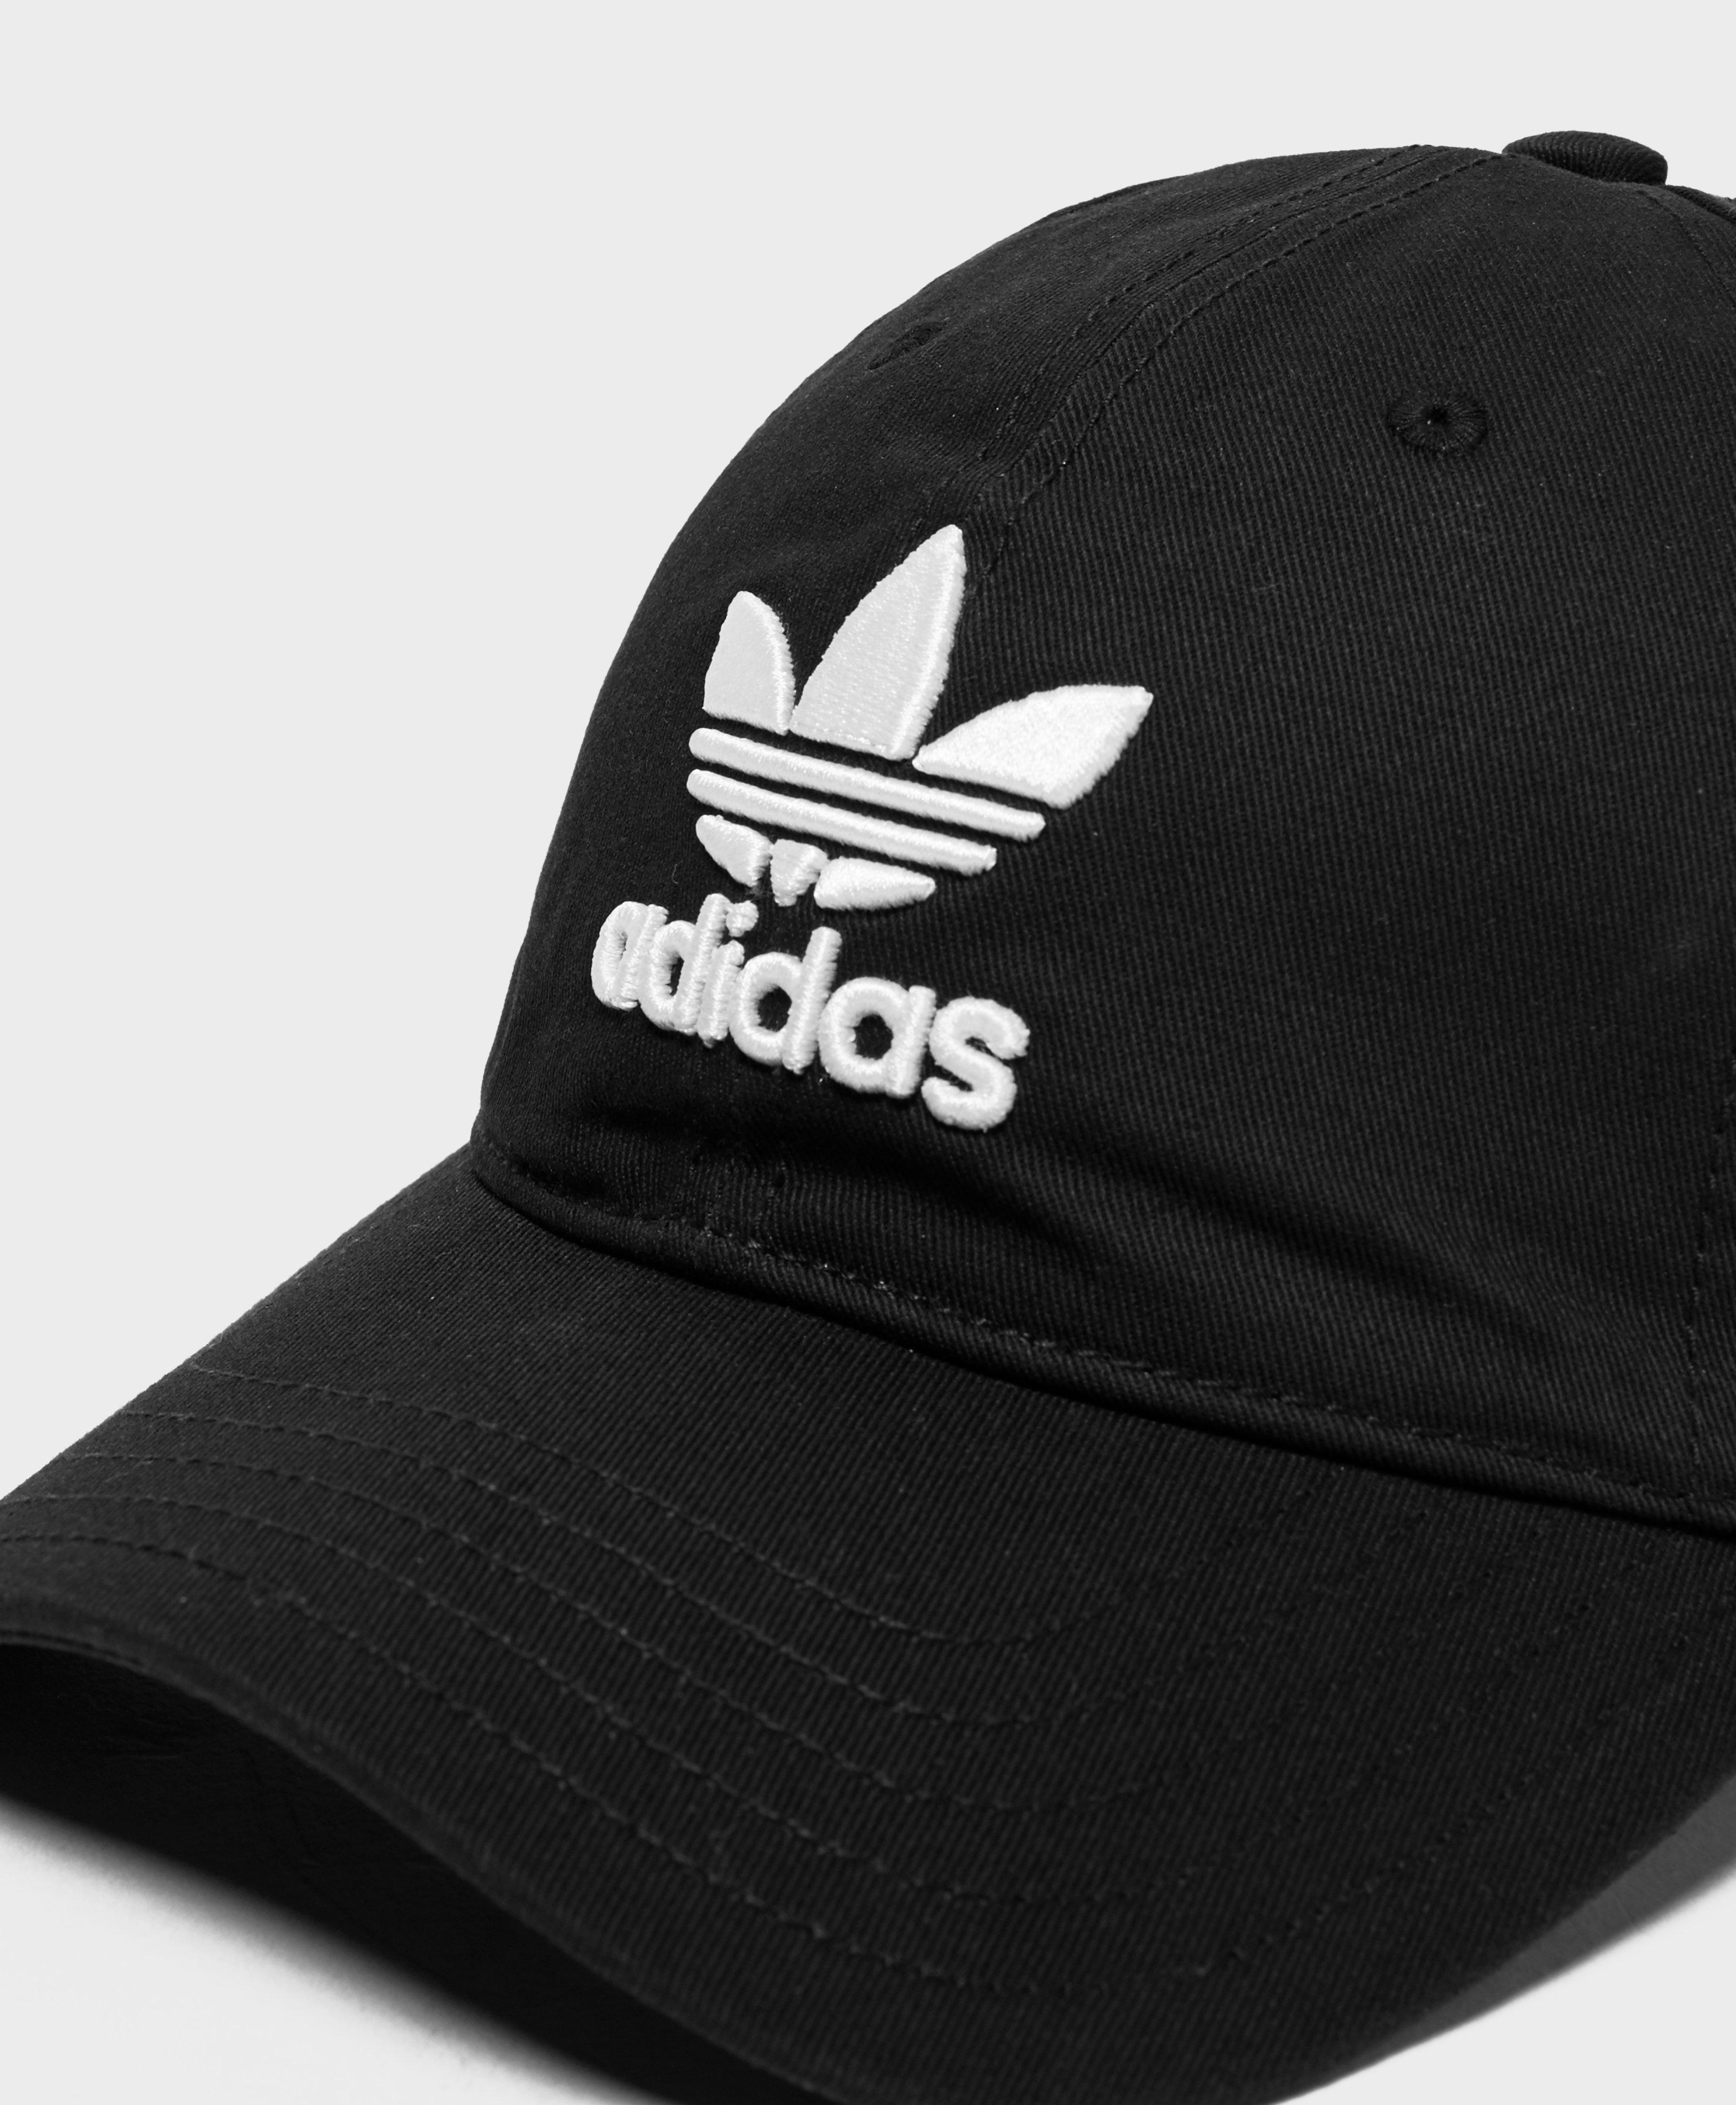 9b6745e2f2892 Lyst - adidas Originals Trefoil Classic Cap in Black for Men